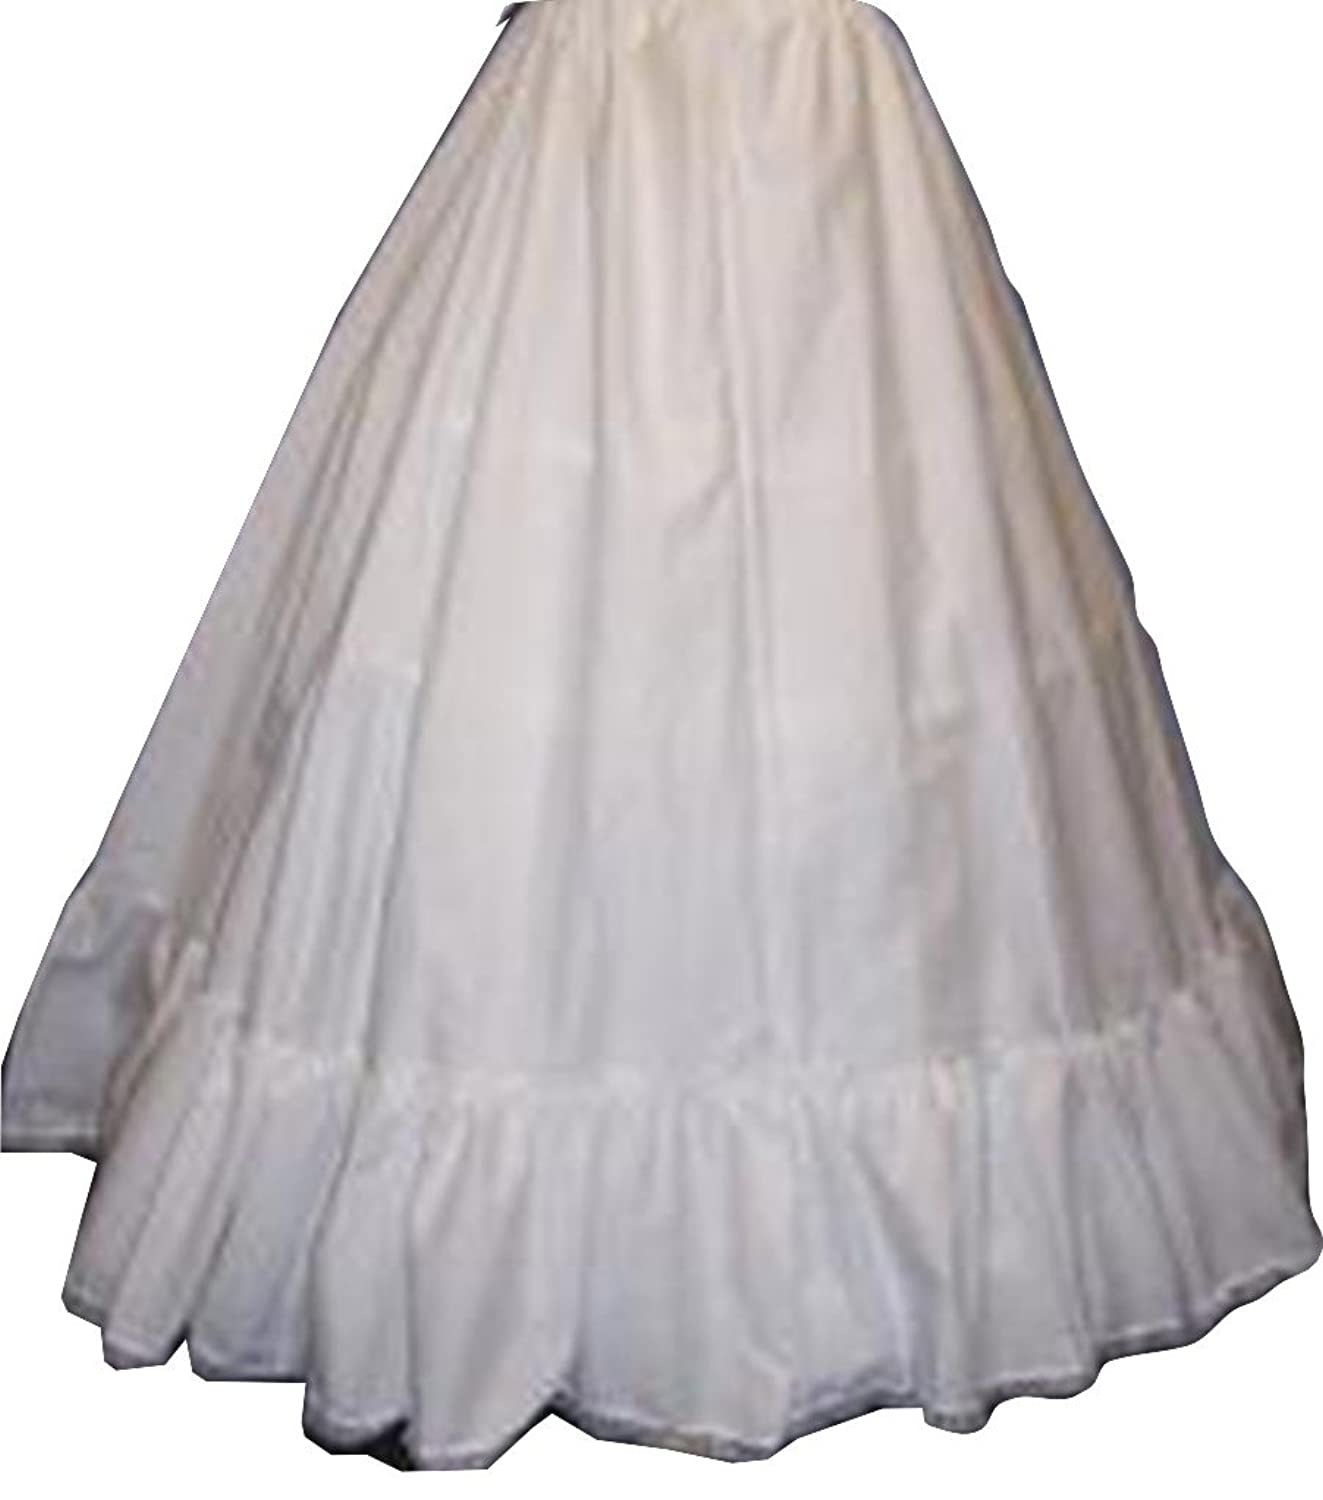 Victorian Wedding Dresses, Shoes, Accessories XL- Hoop Slip Skirt Cotton Cover Over Skirt Civil War Wear (102DSC-C) $40.00 AT vintagedancer.com